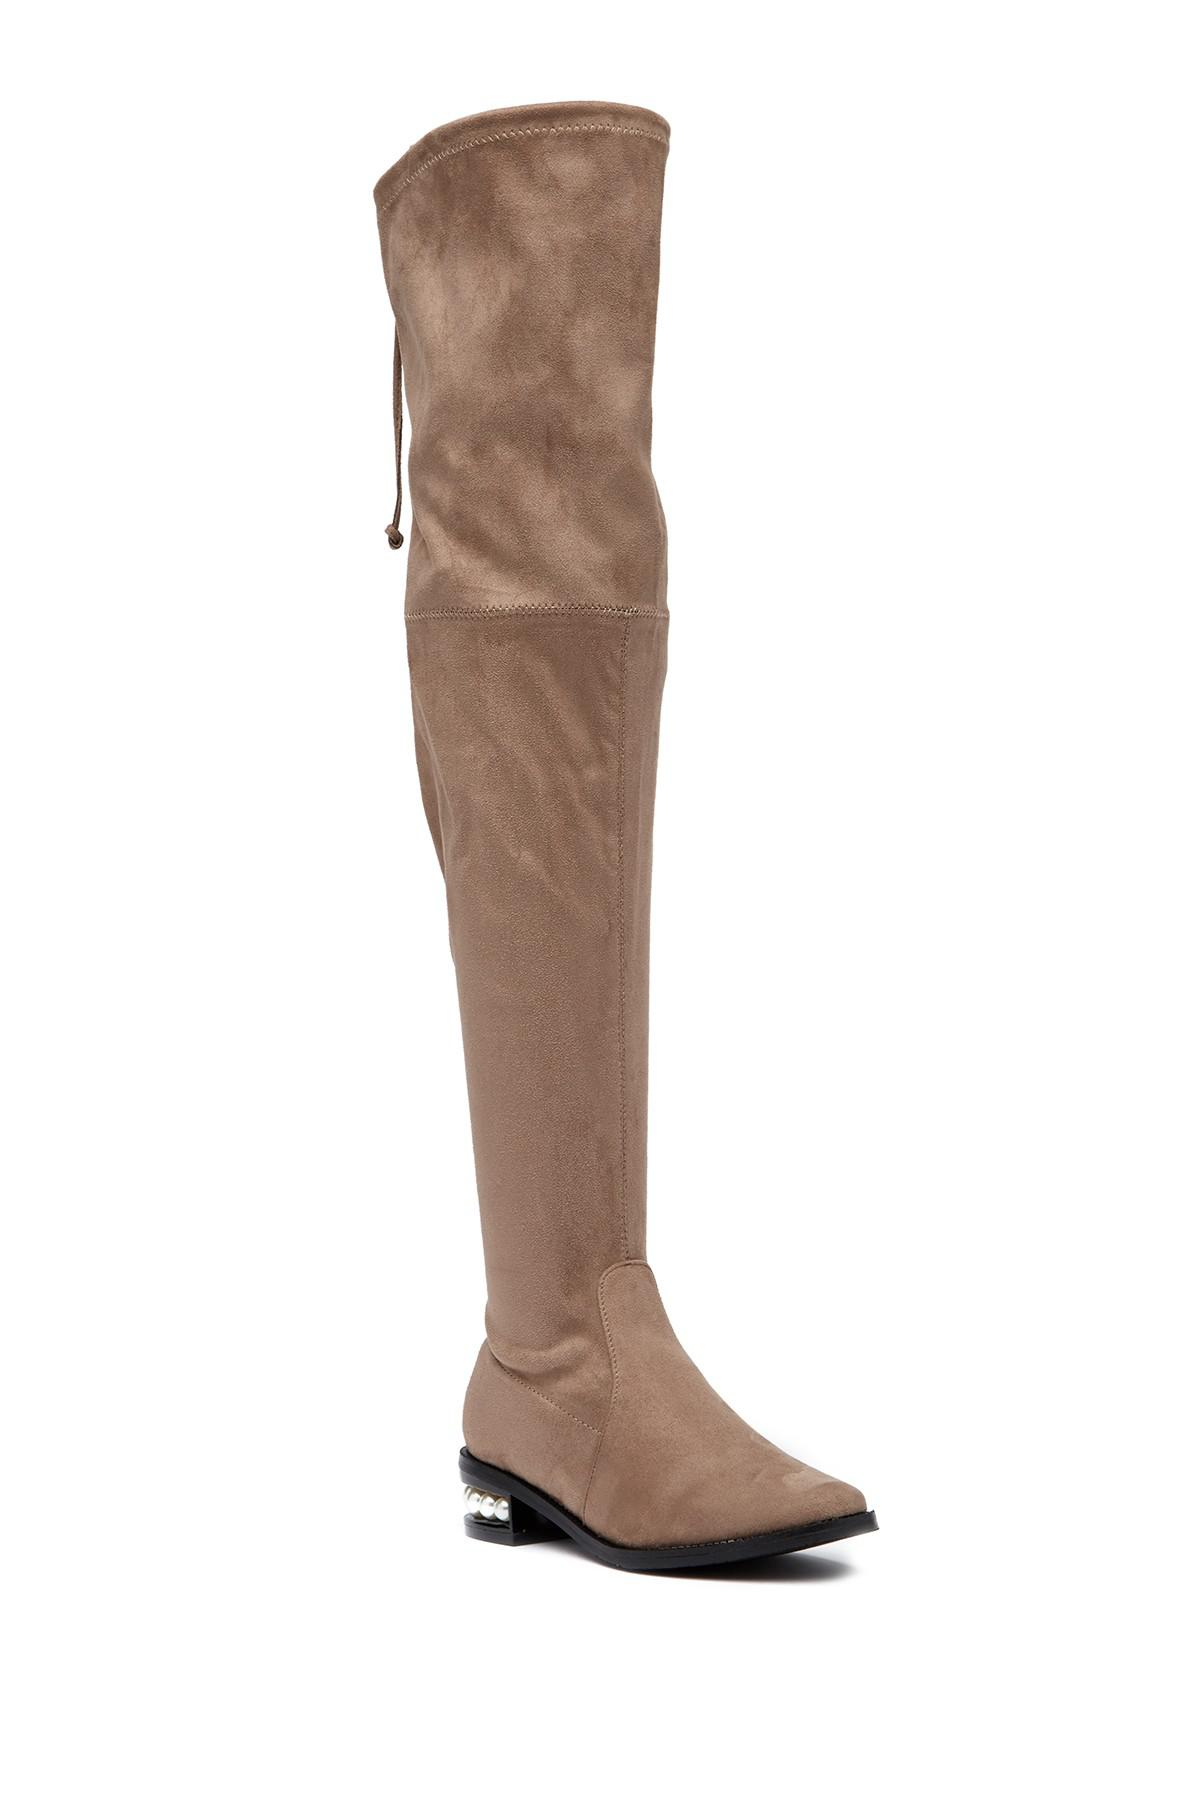 5826f8e8b Catherine Malandrino. Women's Brown Perse Embellished Over-the-knee Boot